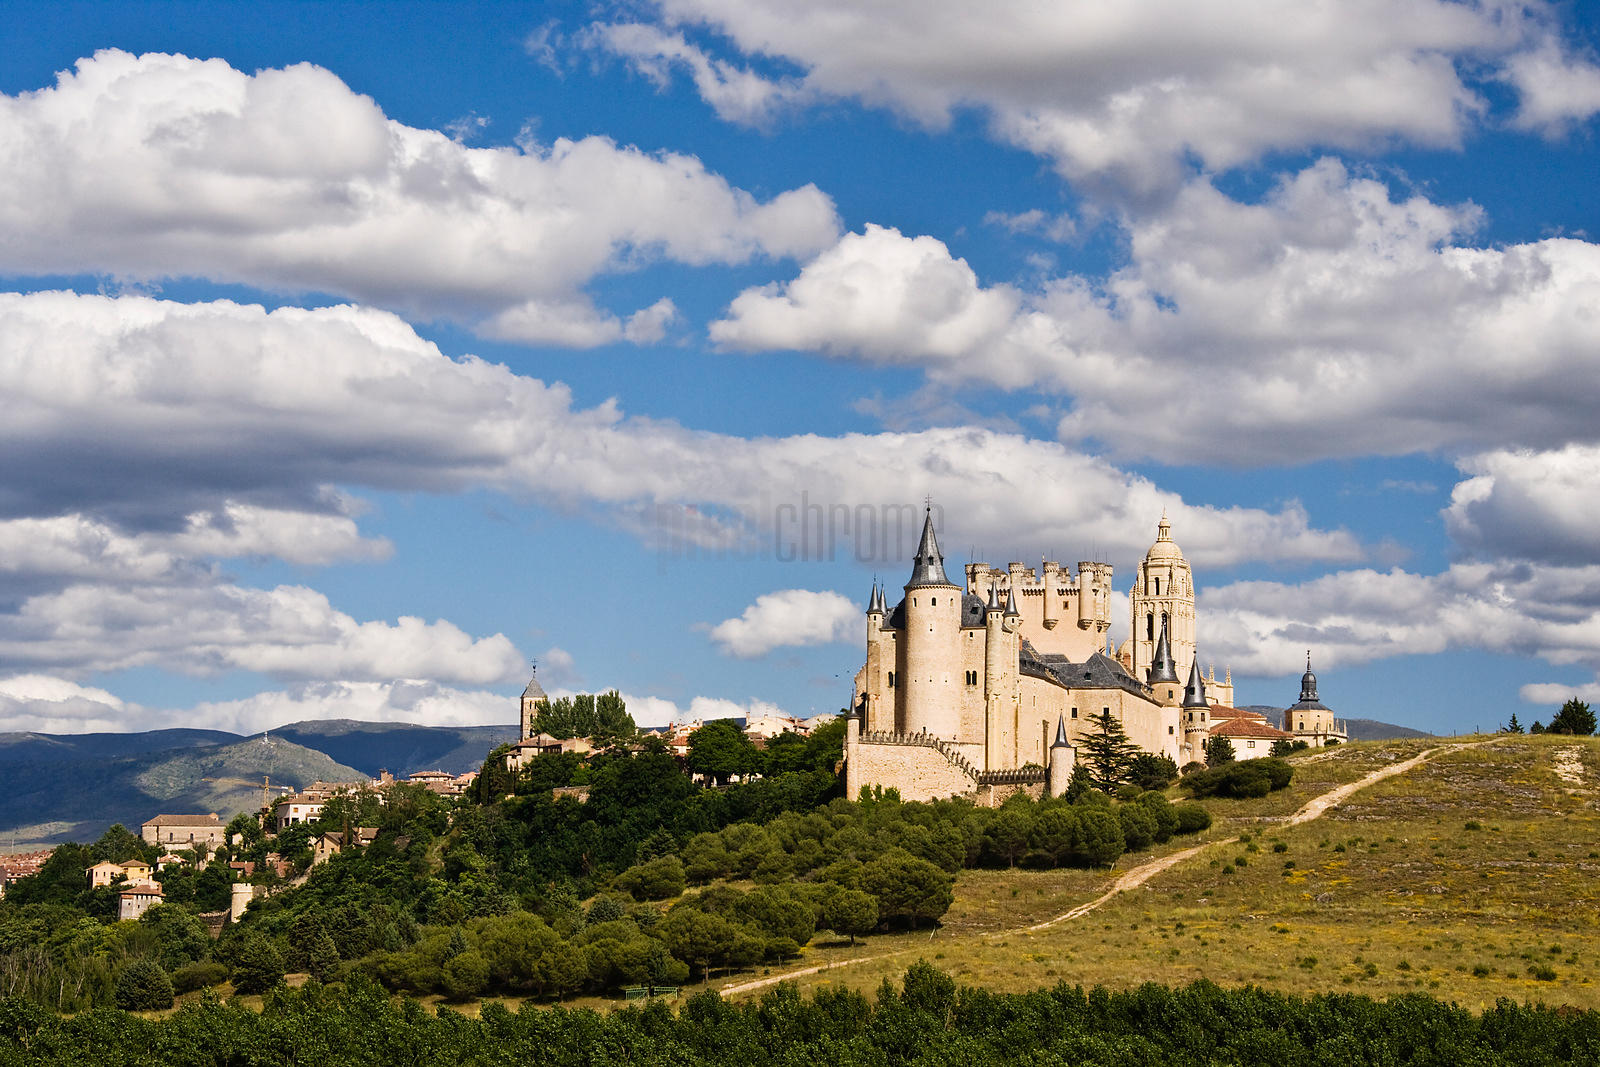 Alcazar Castle Segovia Castile and Leon Spain